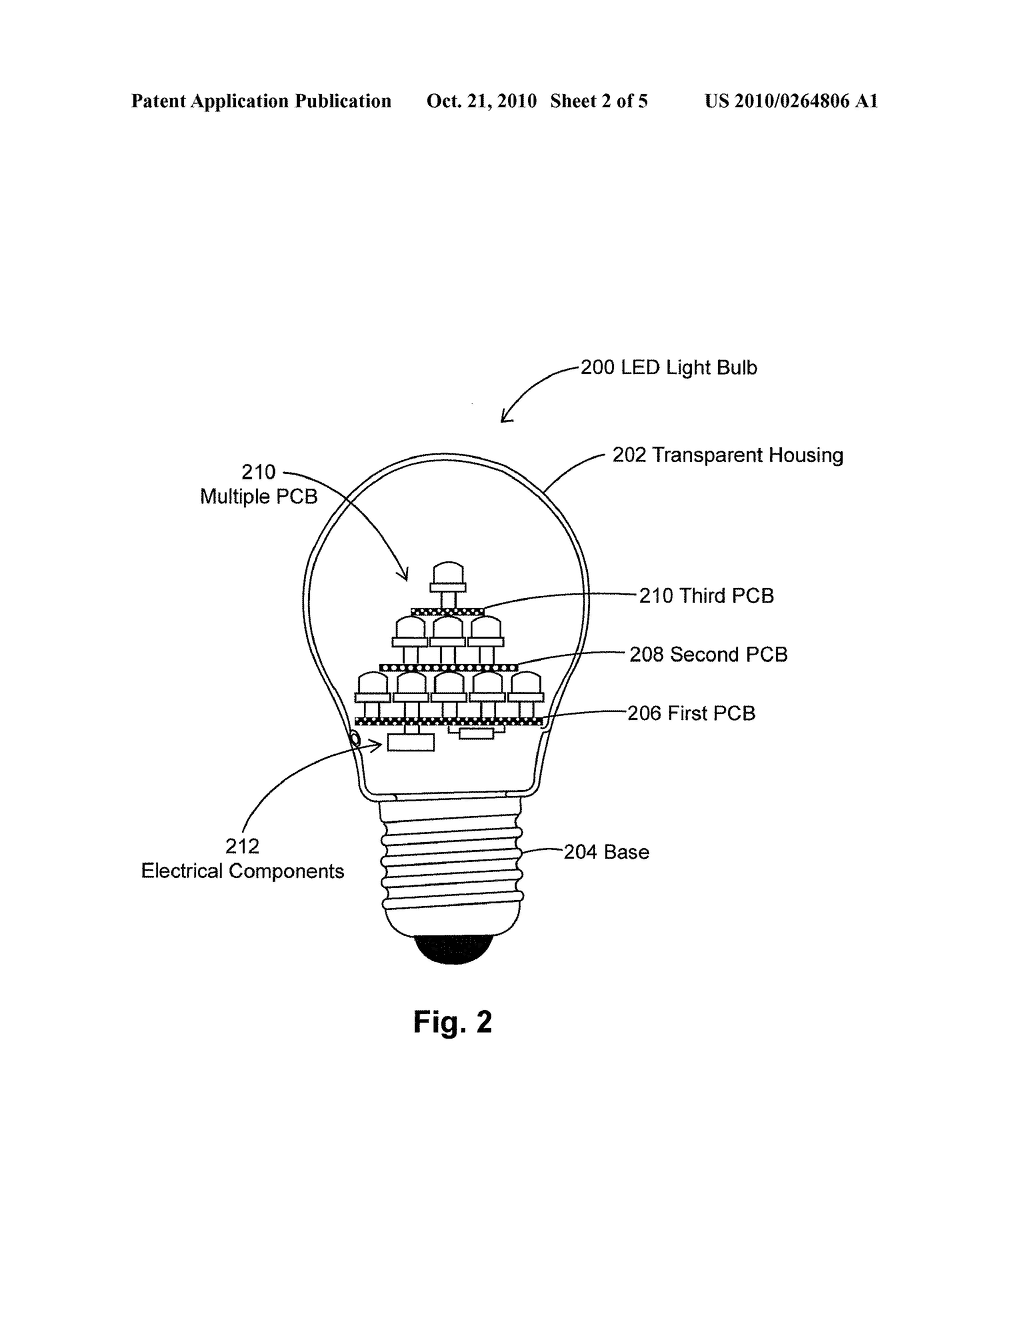 hight resolution of led light bulbs in pyramidal structure for efficient heat dissipation diagram schematic and image 03